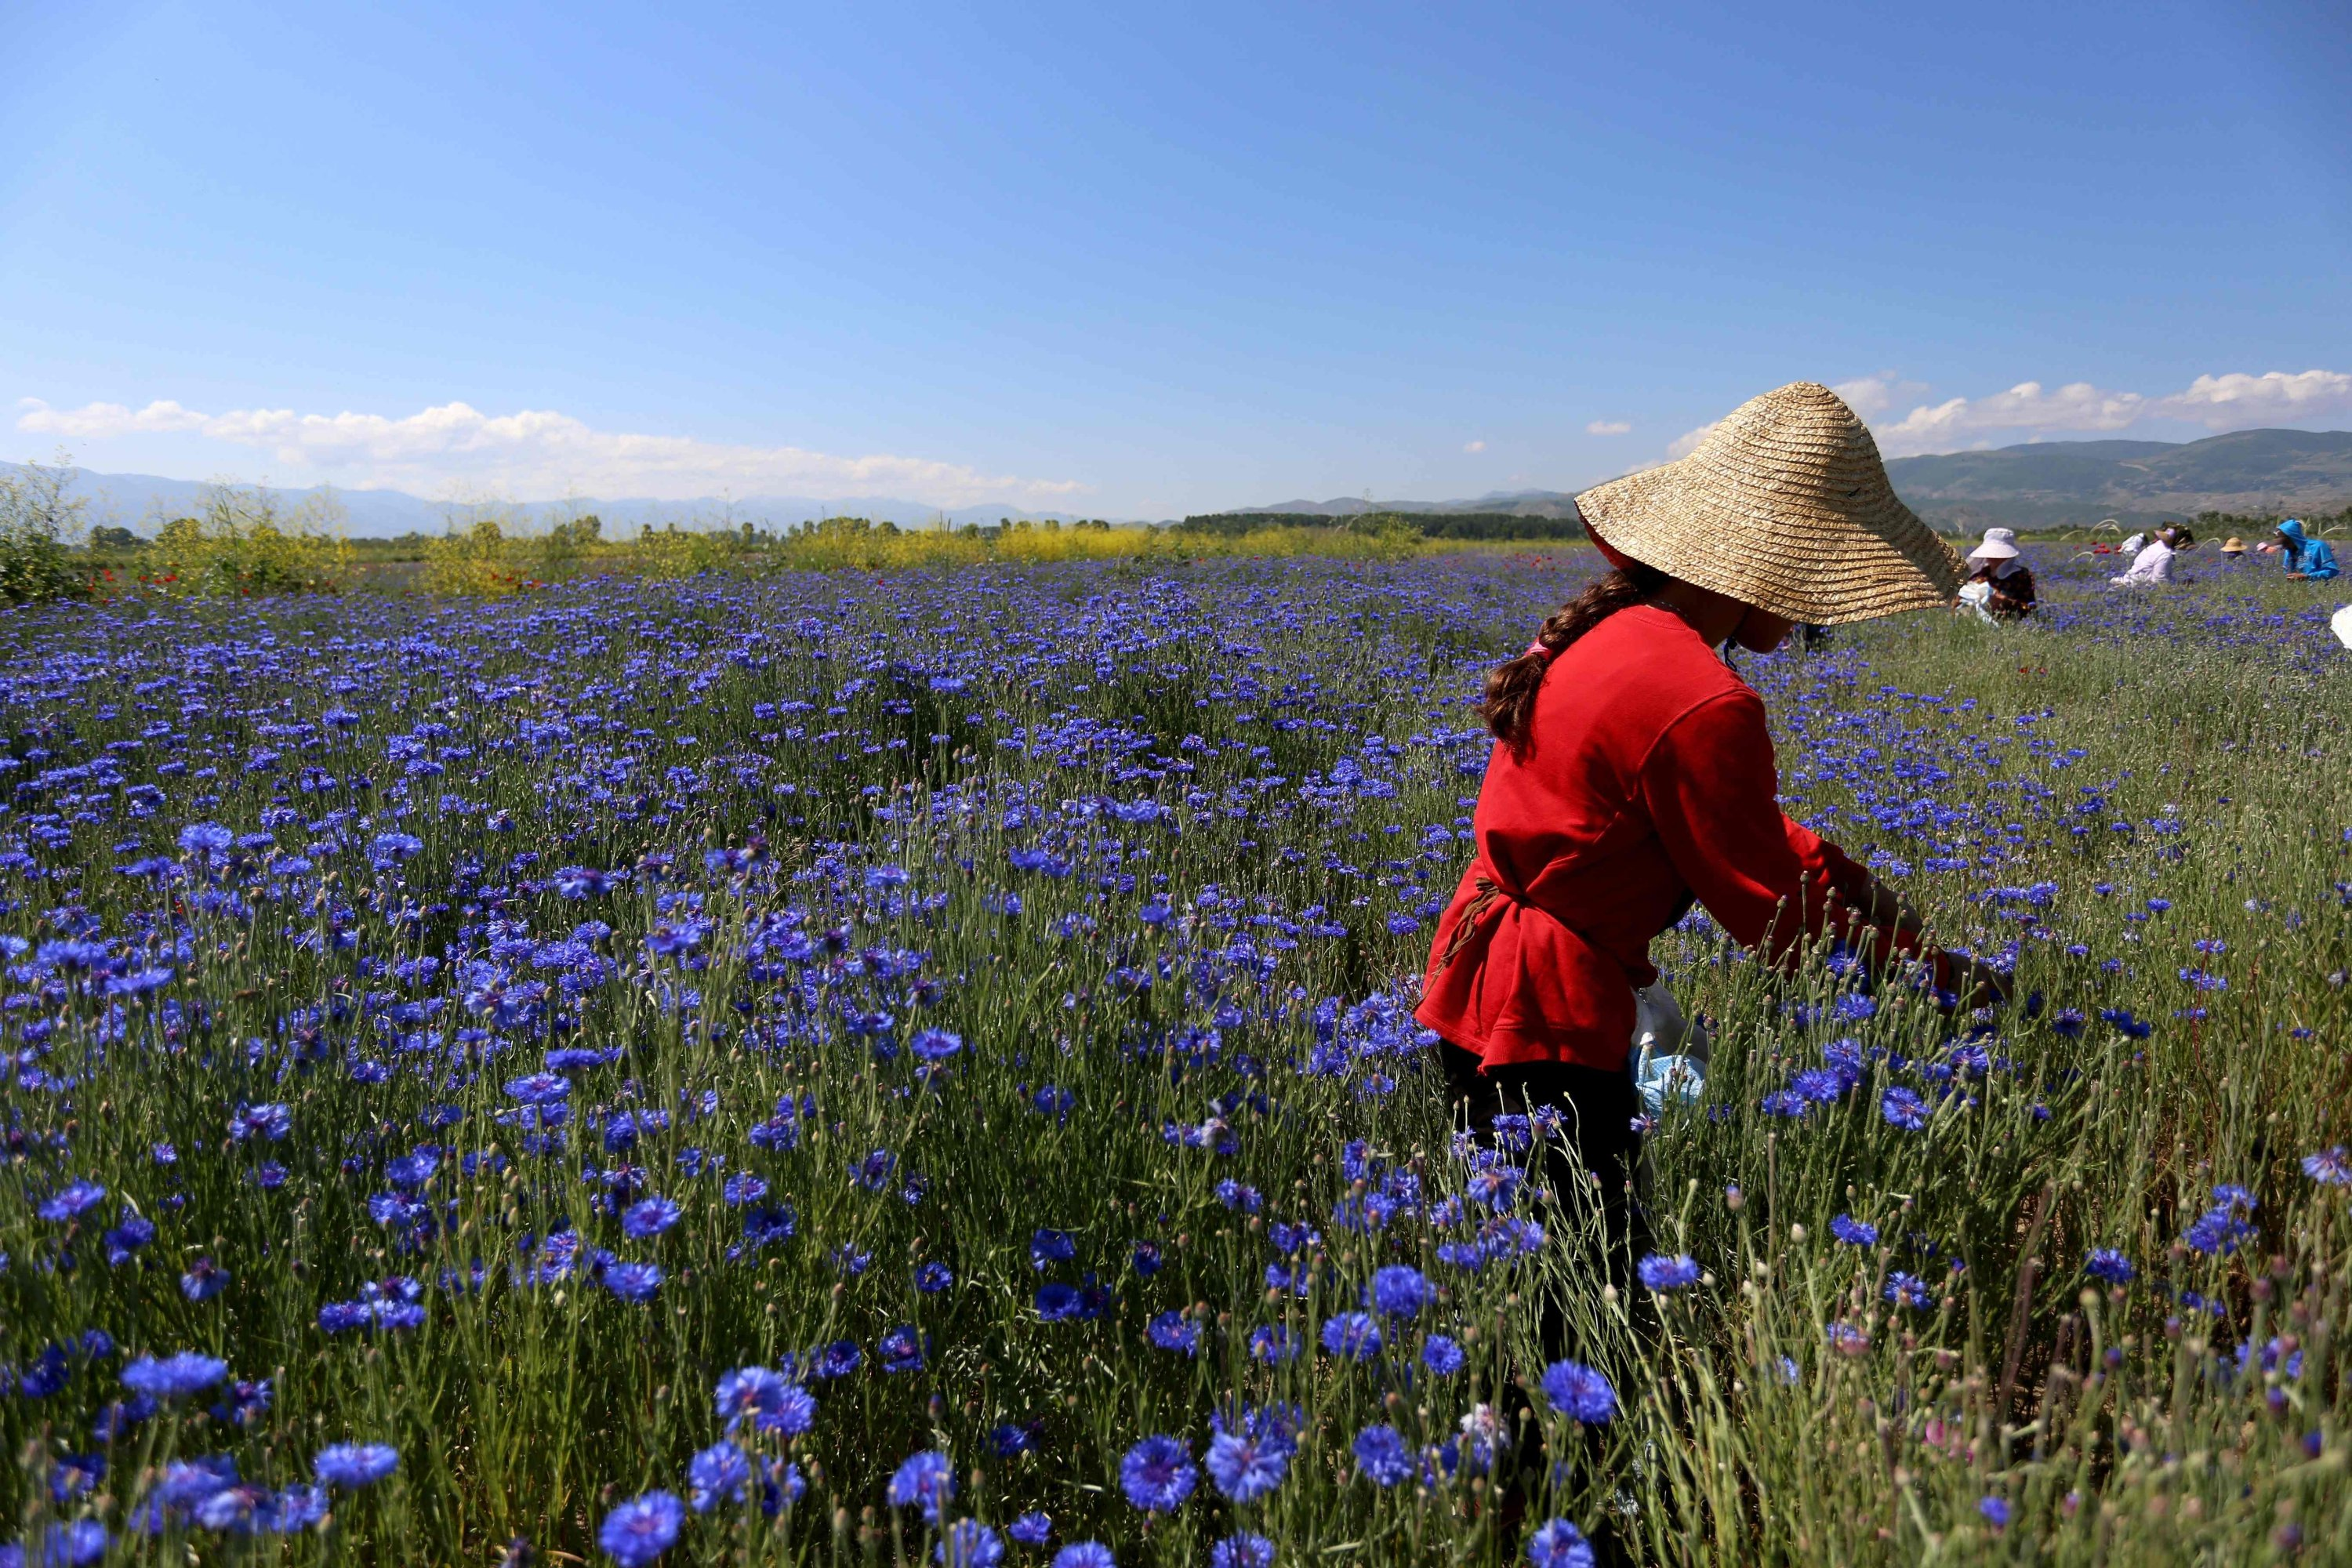 Farmers pick up medicinal herb Centaurea cyanus, commonly known as cornflower, in the village of Sheqeras near the city of Korca, Albania, June 16, 2021. (AFP Photo)